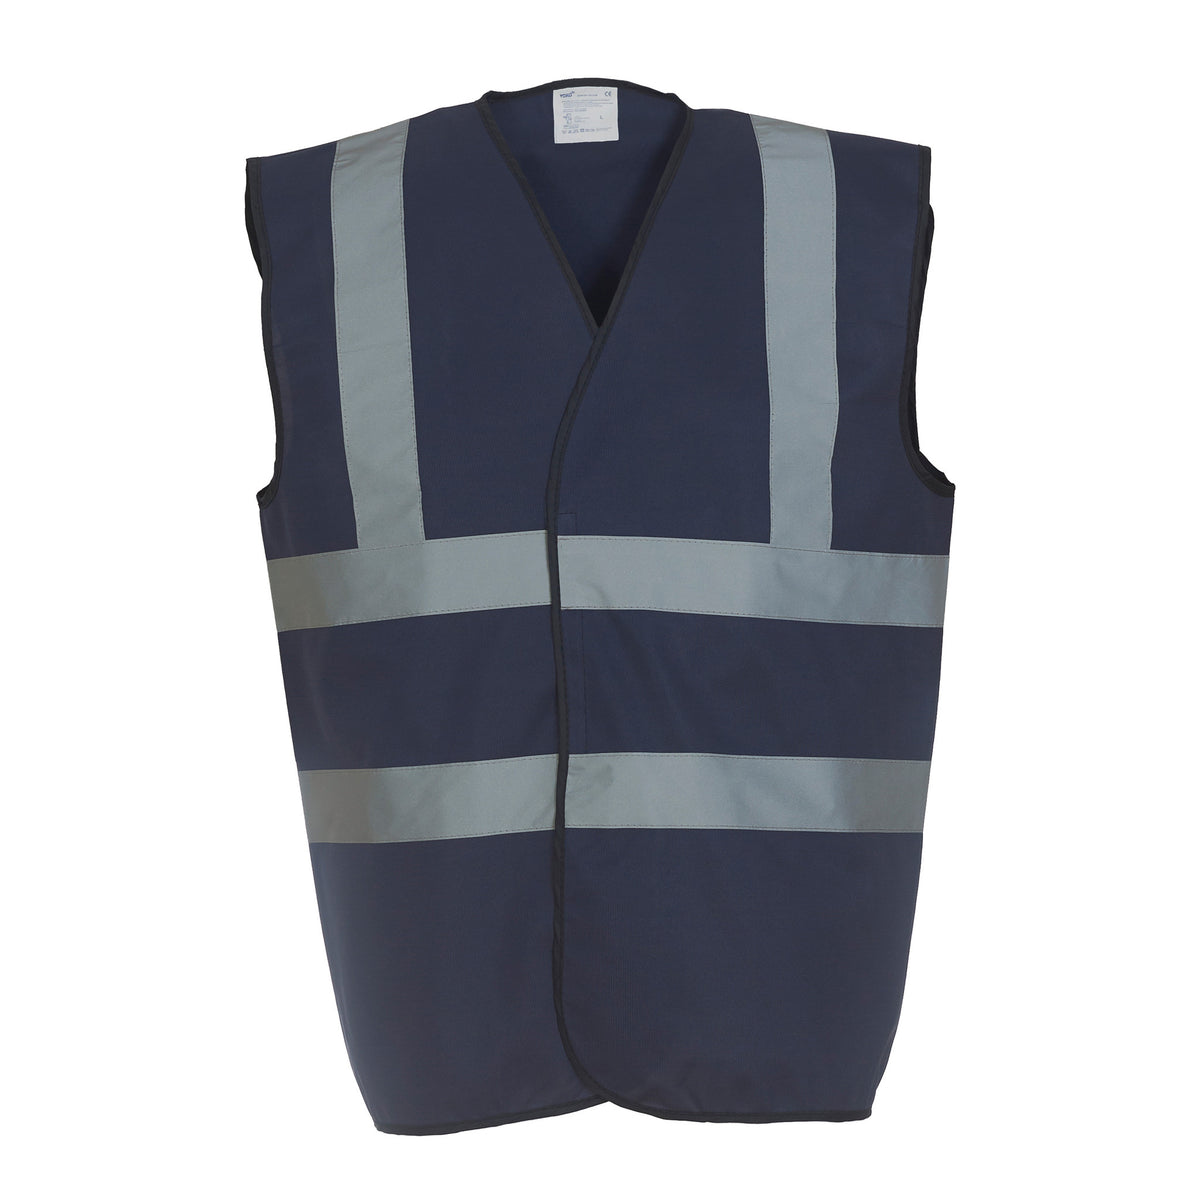 Enhanced Visibility Vest - peterdrew.com  - 3